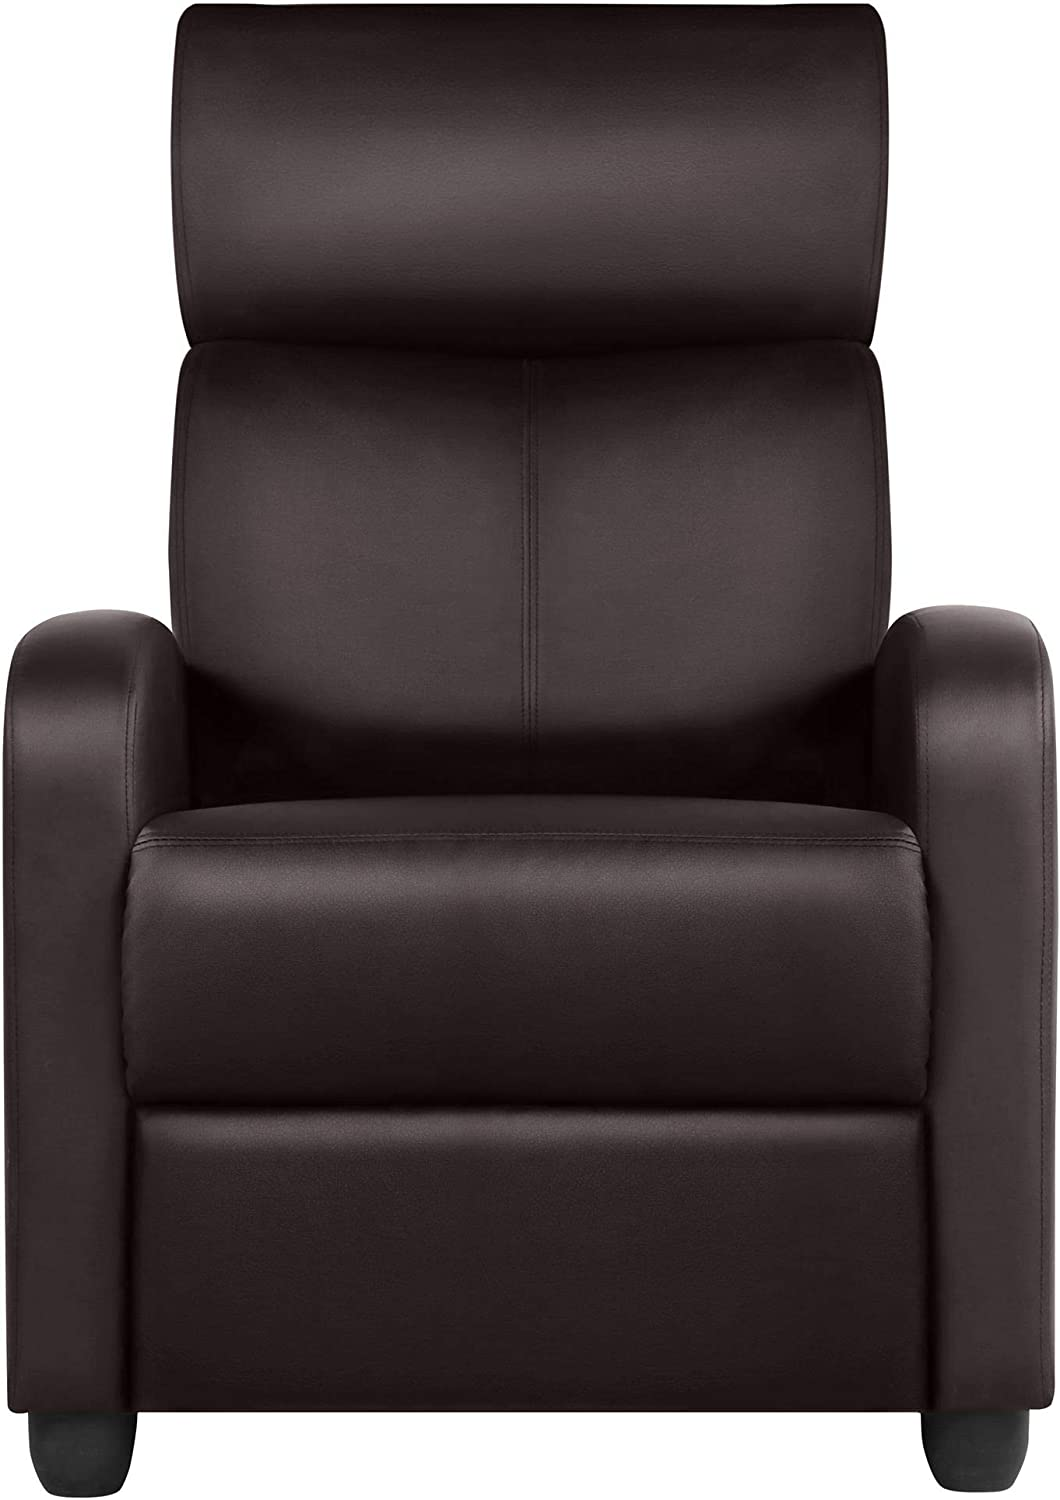 Recliner Chair Single Reclining Sofa